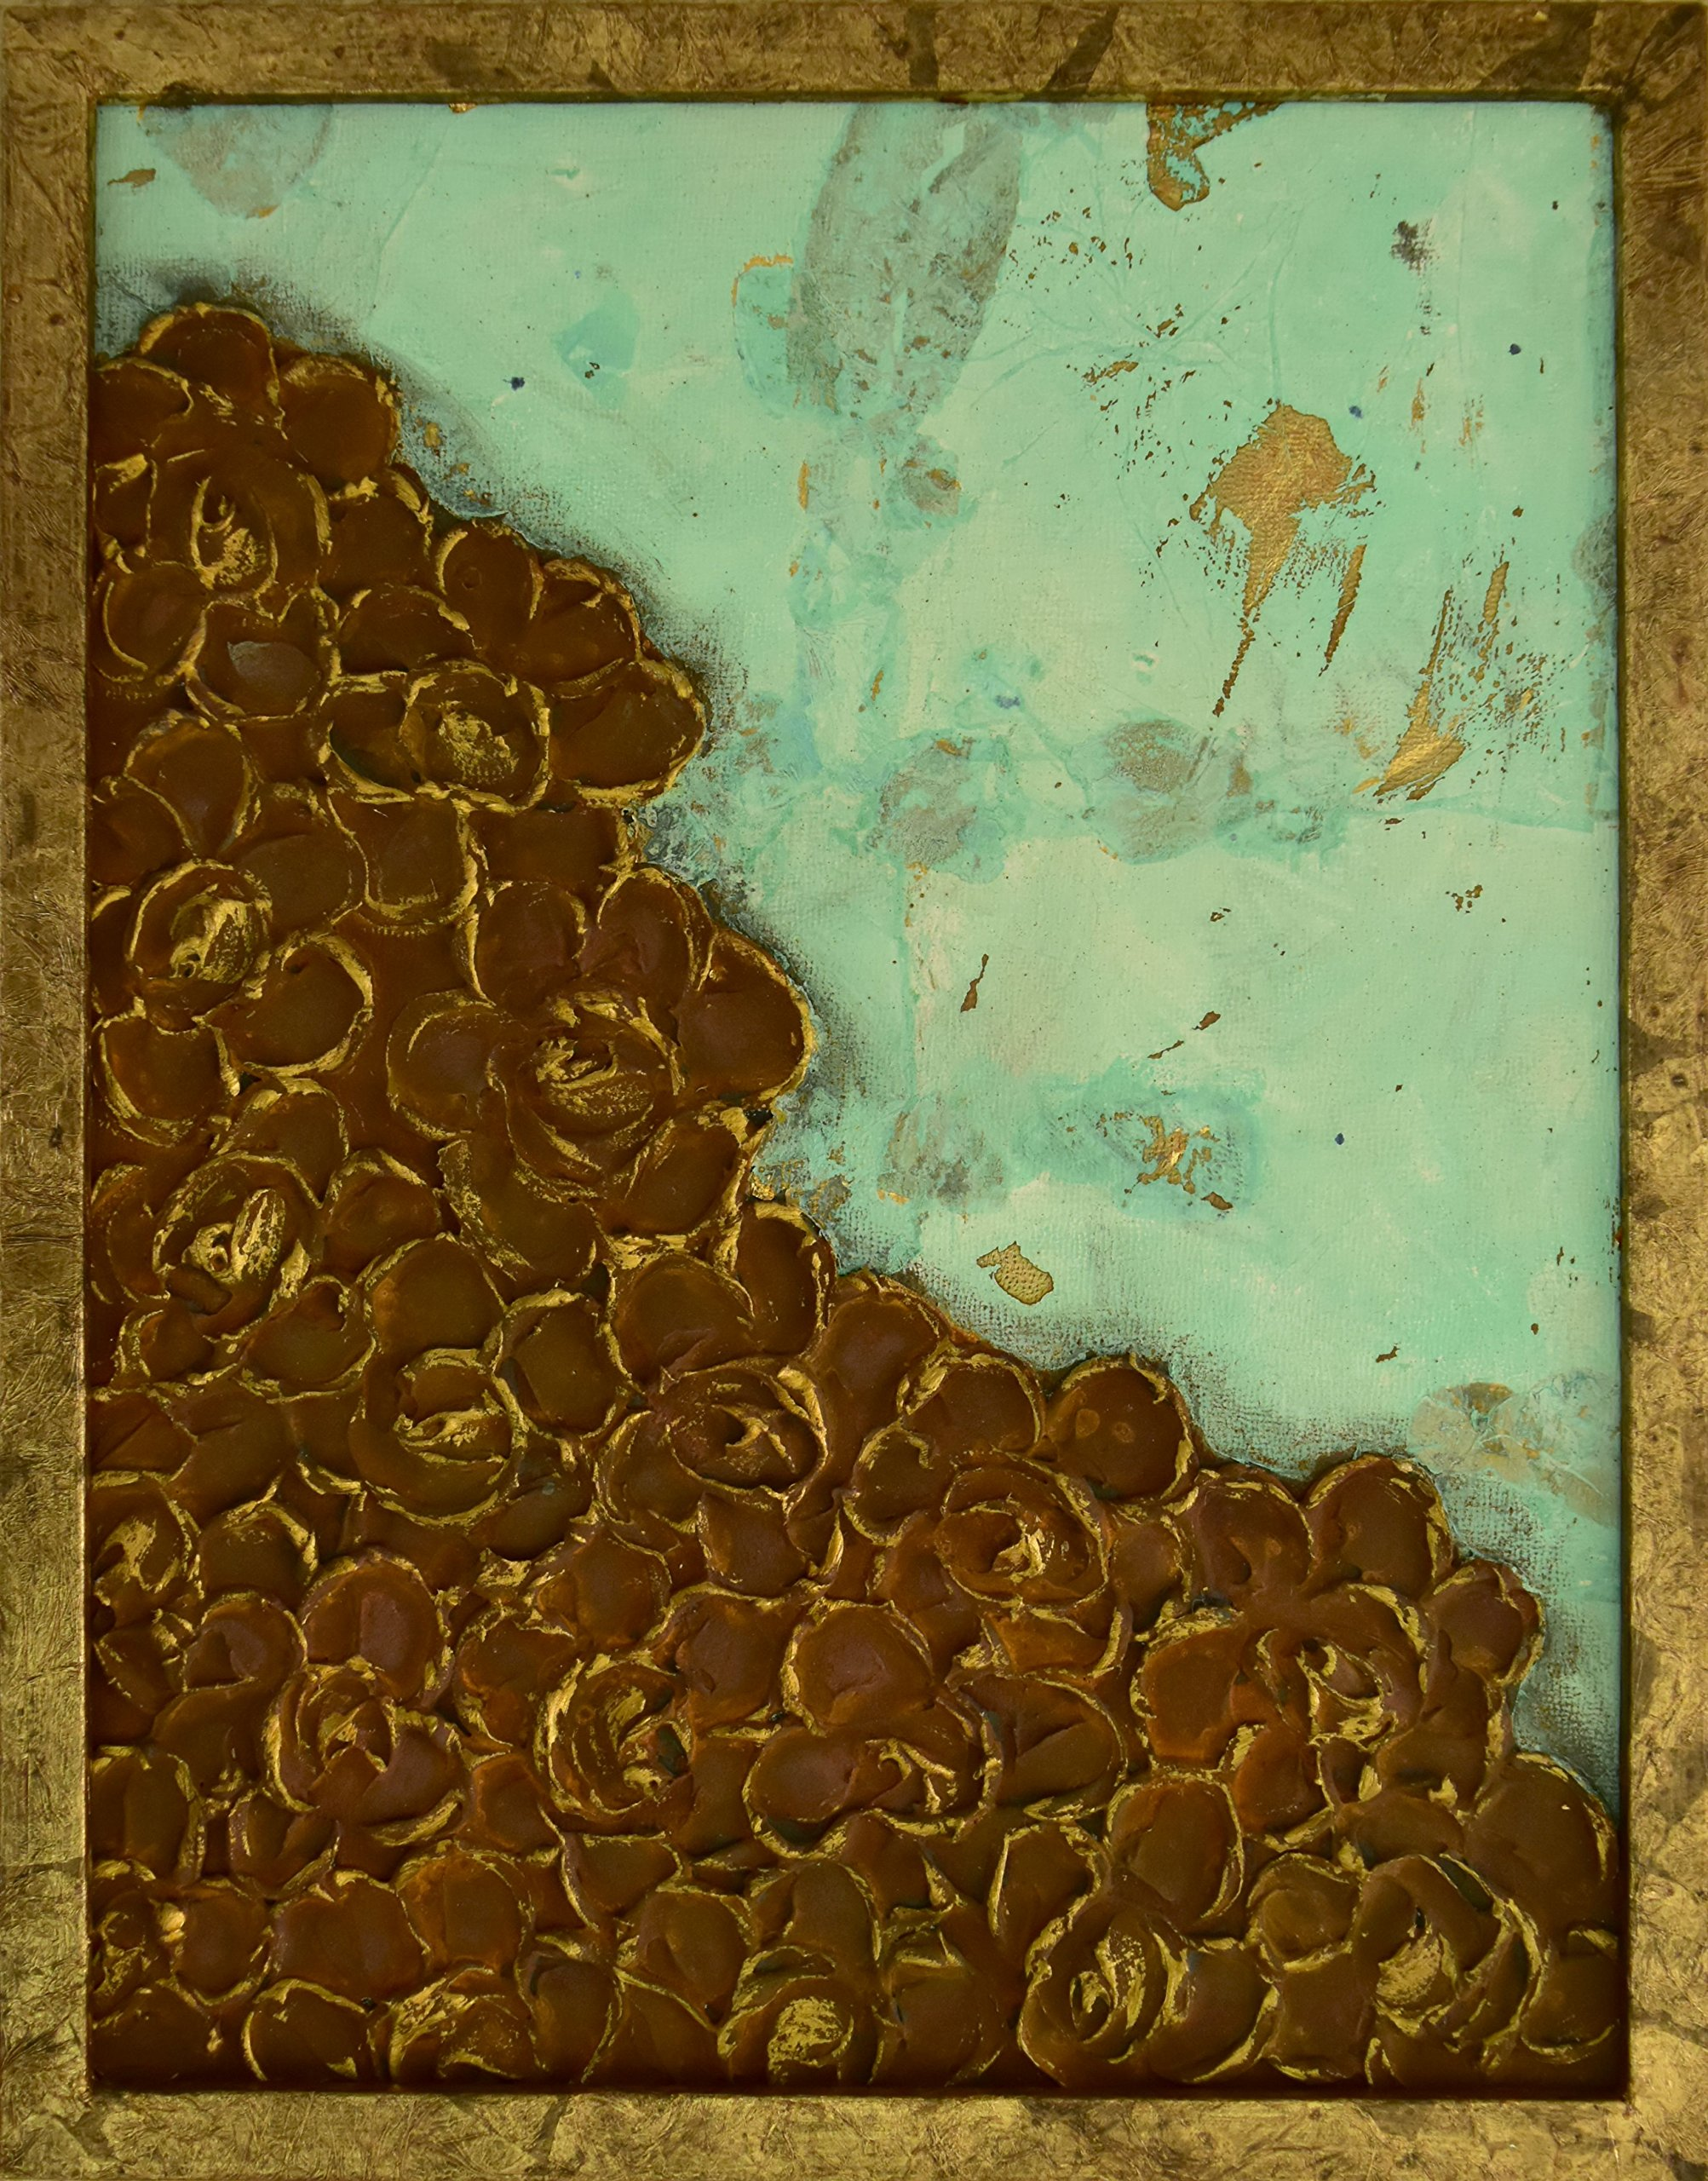 Abstract Rust and Patina Floral by